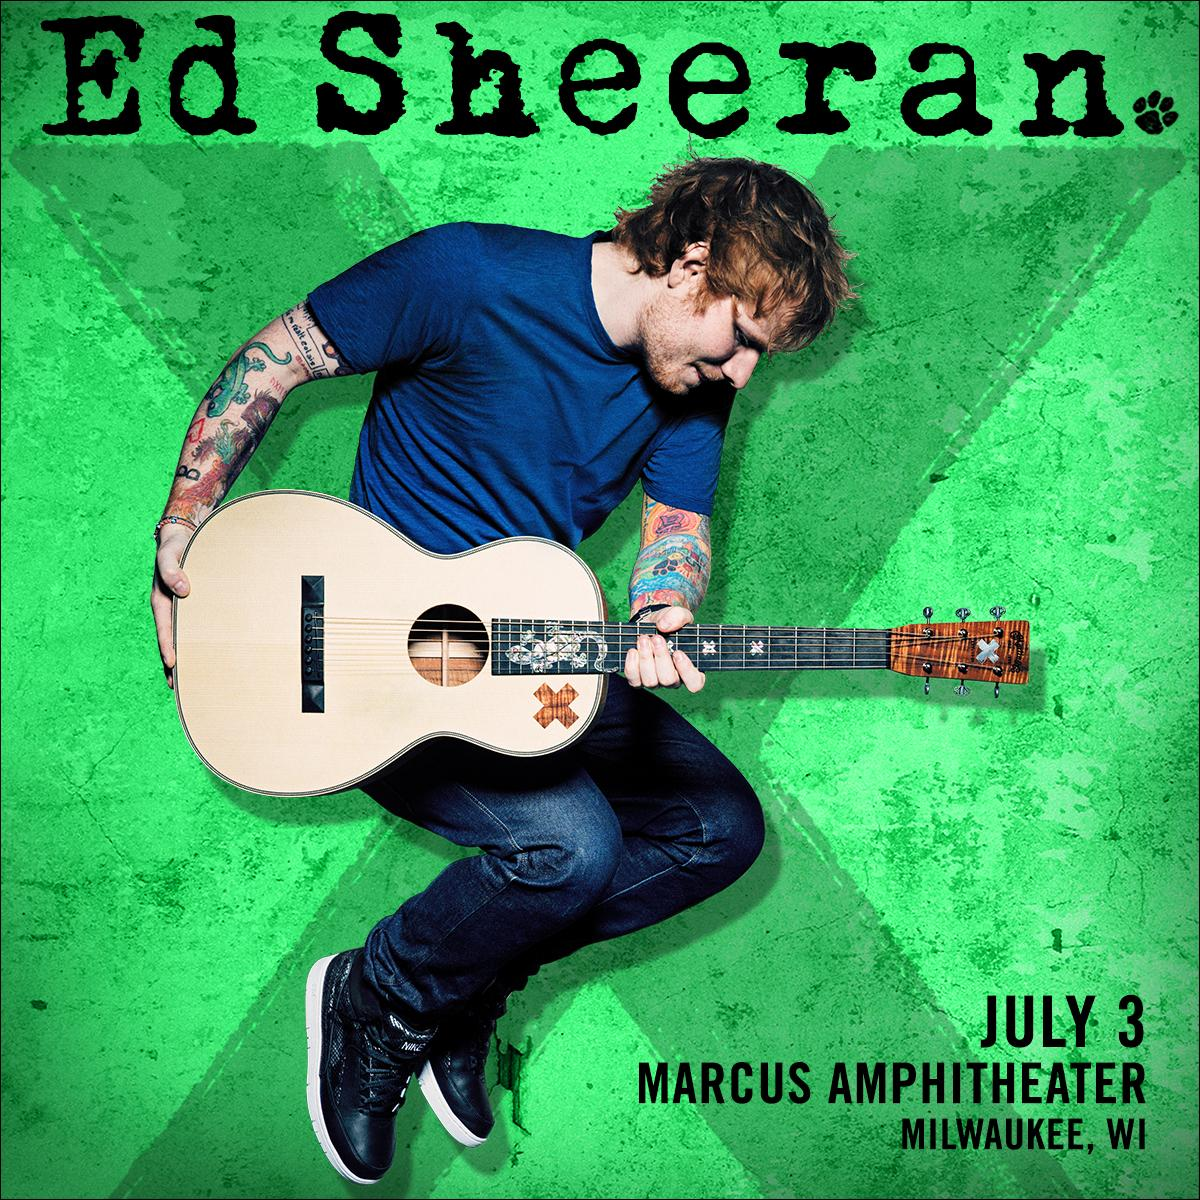 JUST ANNOUNCED! @edsheeran will headline @Marcus_Amp on 7/3! Get tix 2/20, 10:00 AM. Info: http://t.co/e0h6KlqYV2 http://t.co/WPSLJ9MYp3